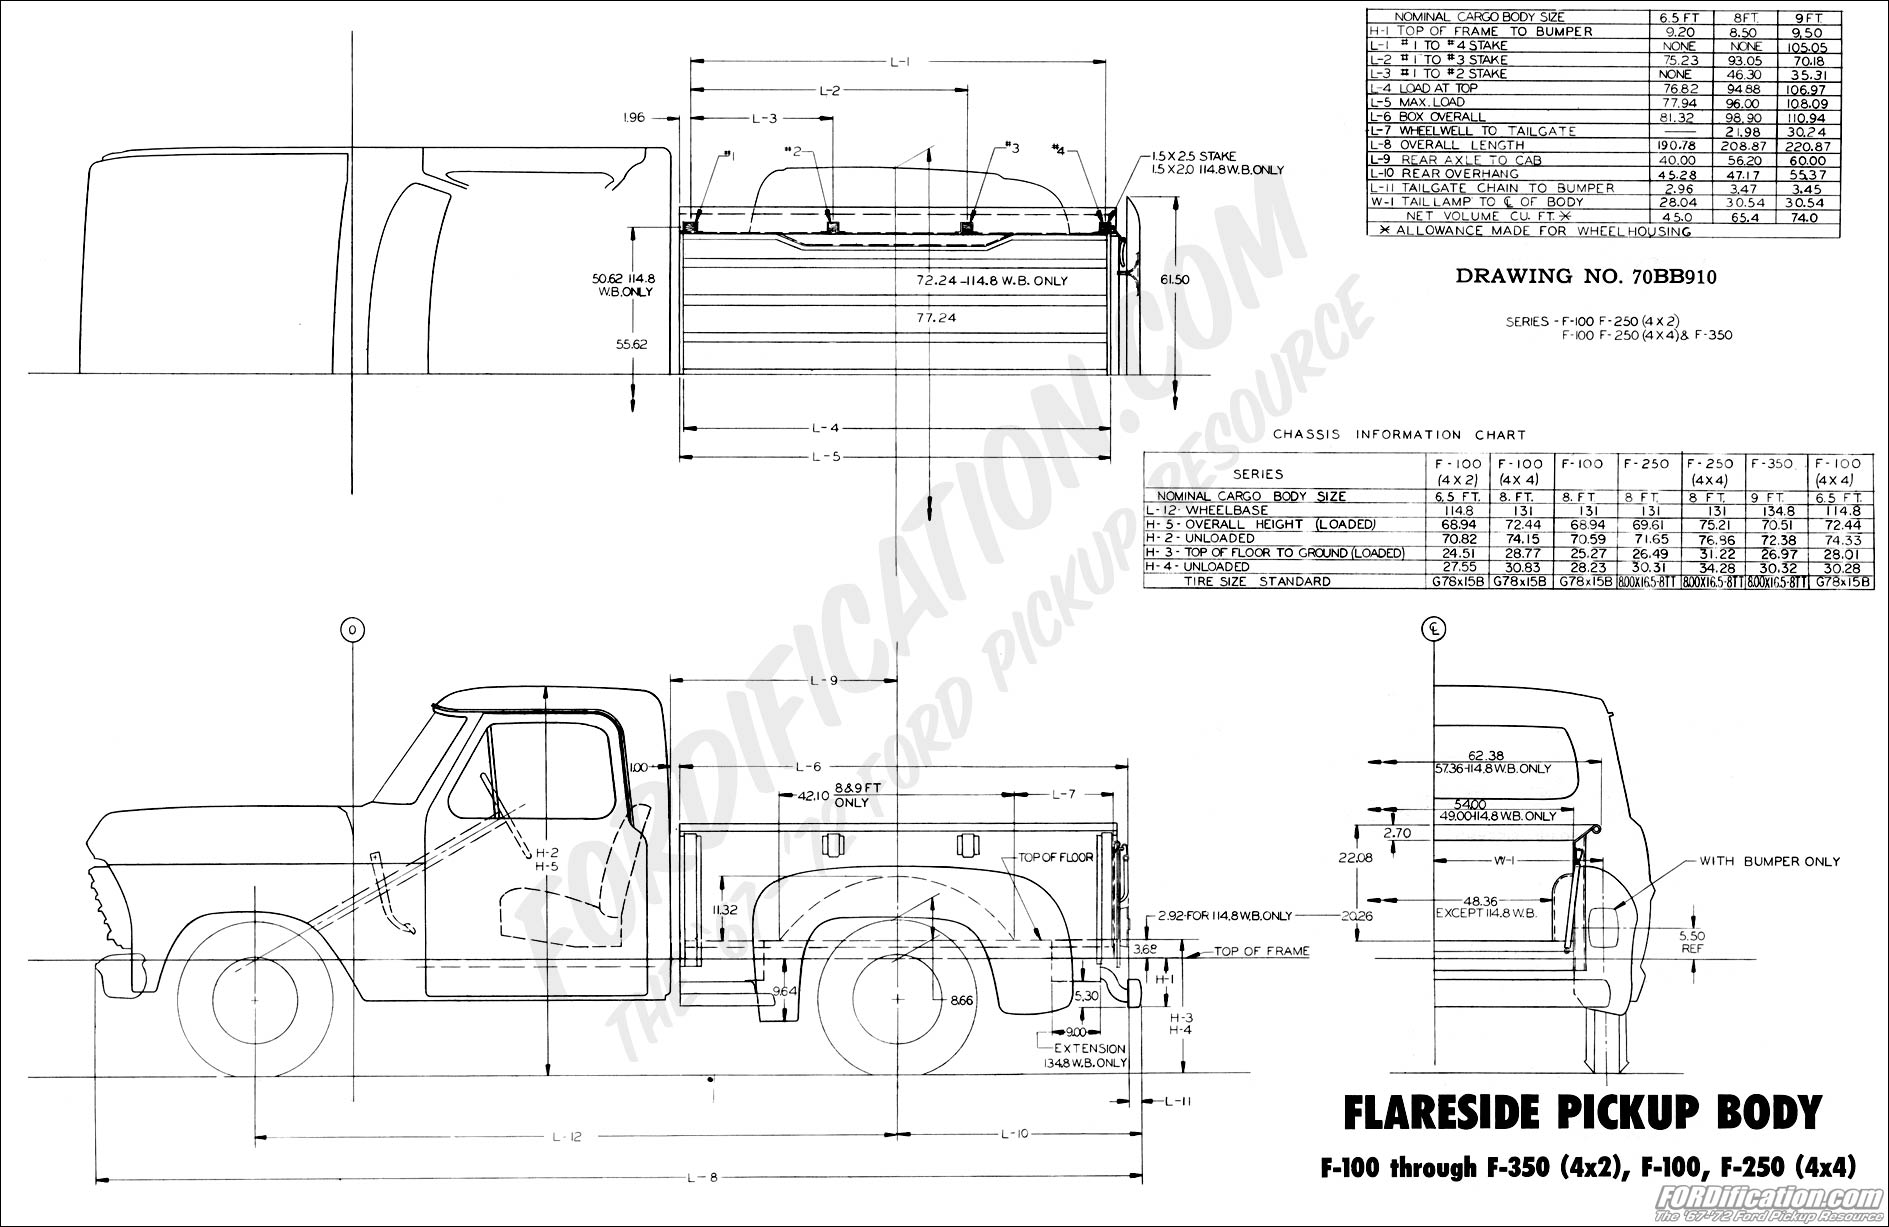 ford wiring diagrams f250 porsche 997 turbo diagram 1970 body builder's layout book - fordification.com